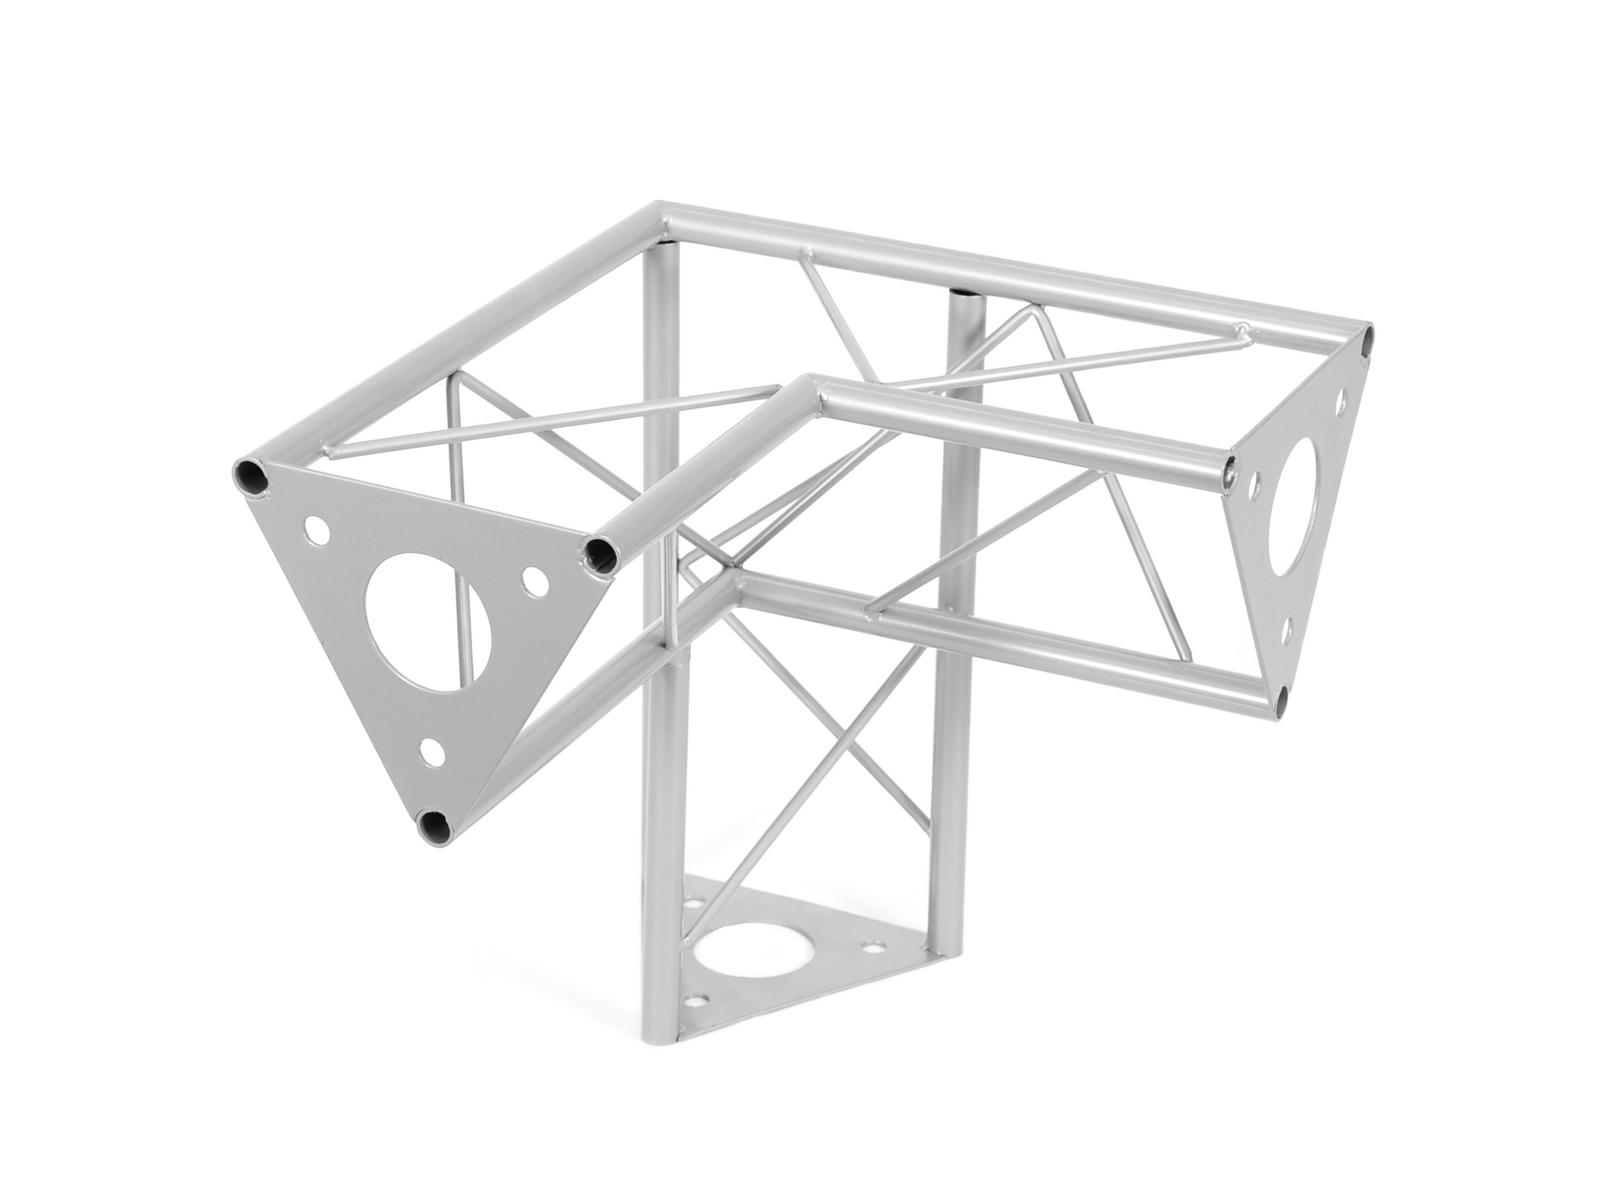 DECOTRUSS SAL-34 angolo a 3 vie \/ a sinistra sil